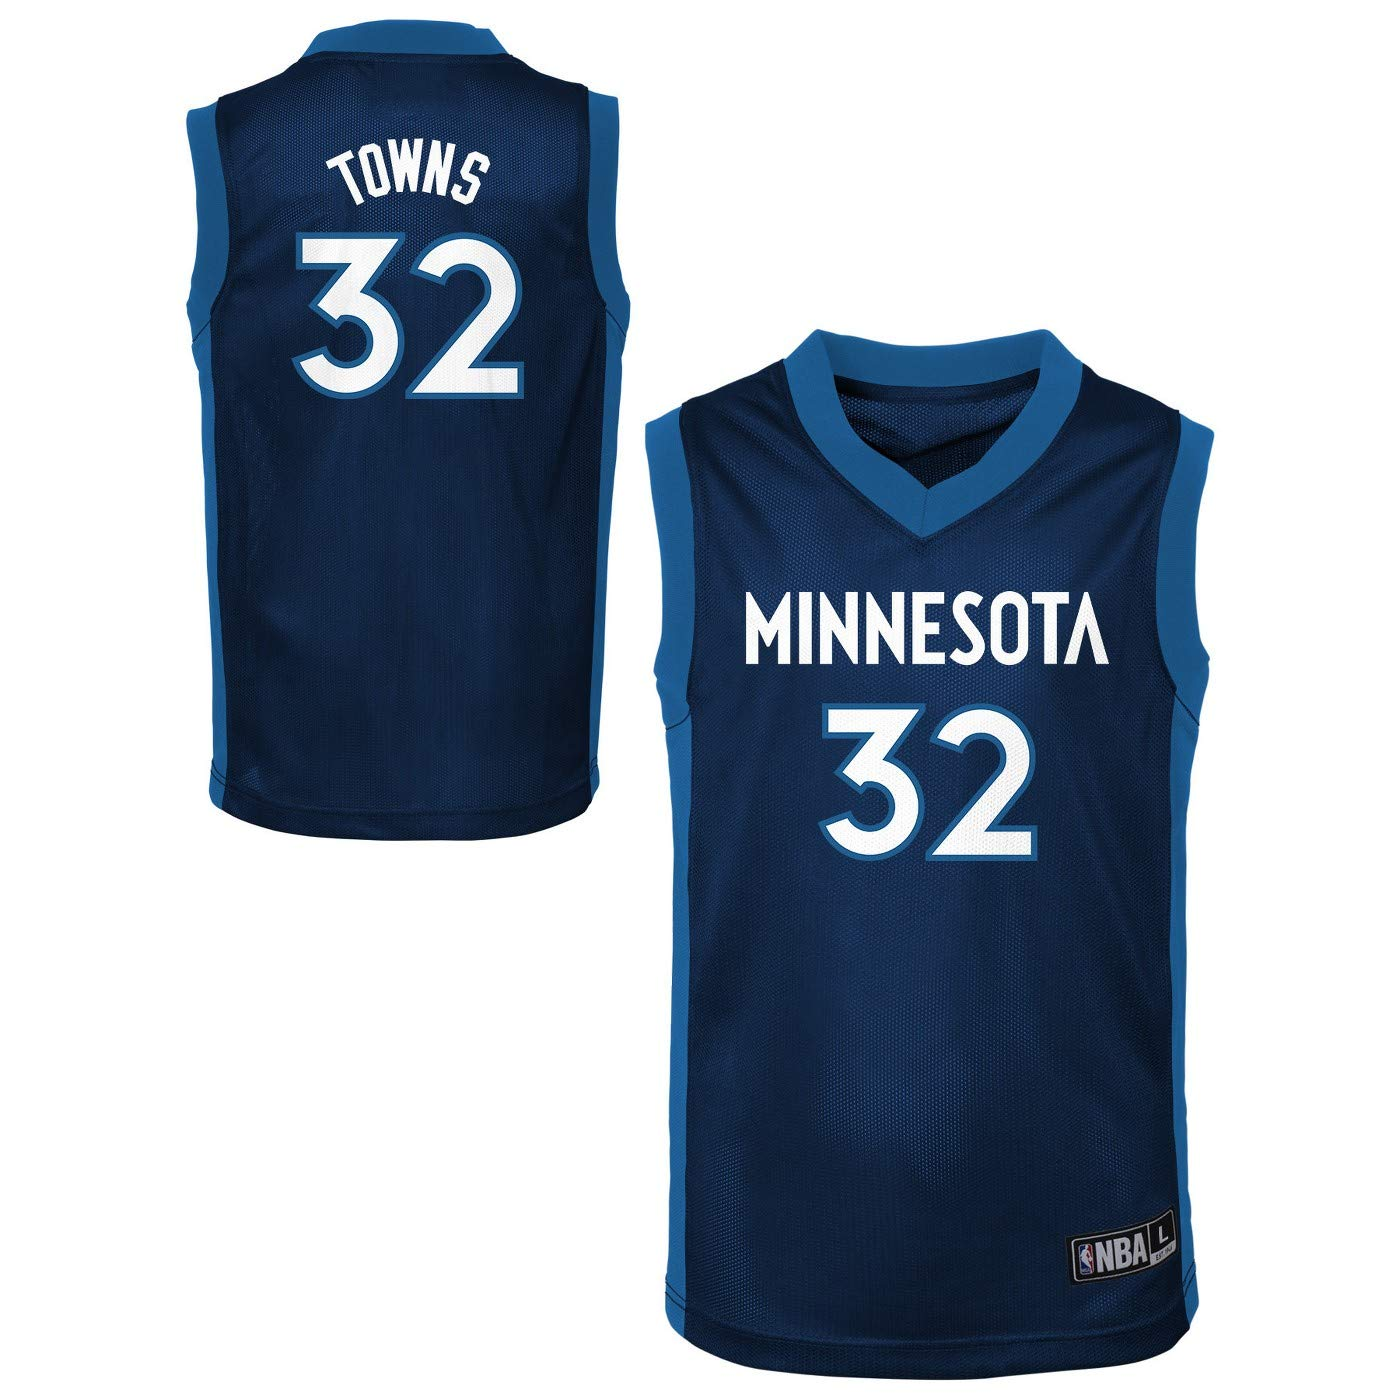 on sale 1cc93 41153 Outerstuff NBA Toddler Team Color Player Name & Number Replica Road Jersey